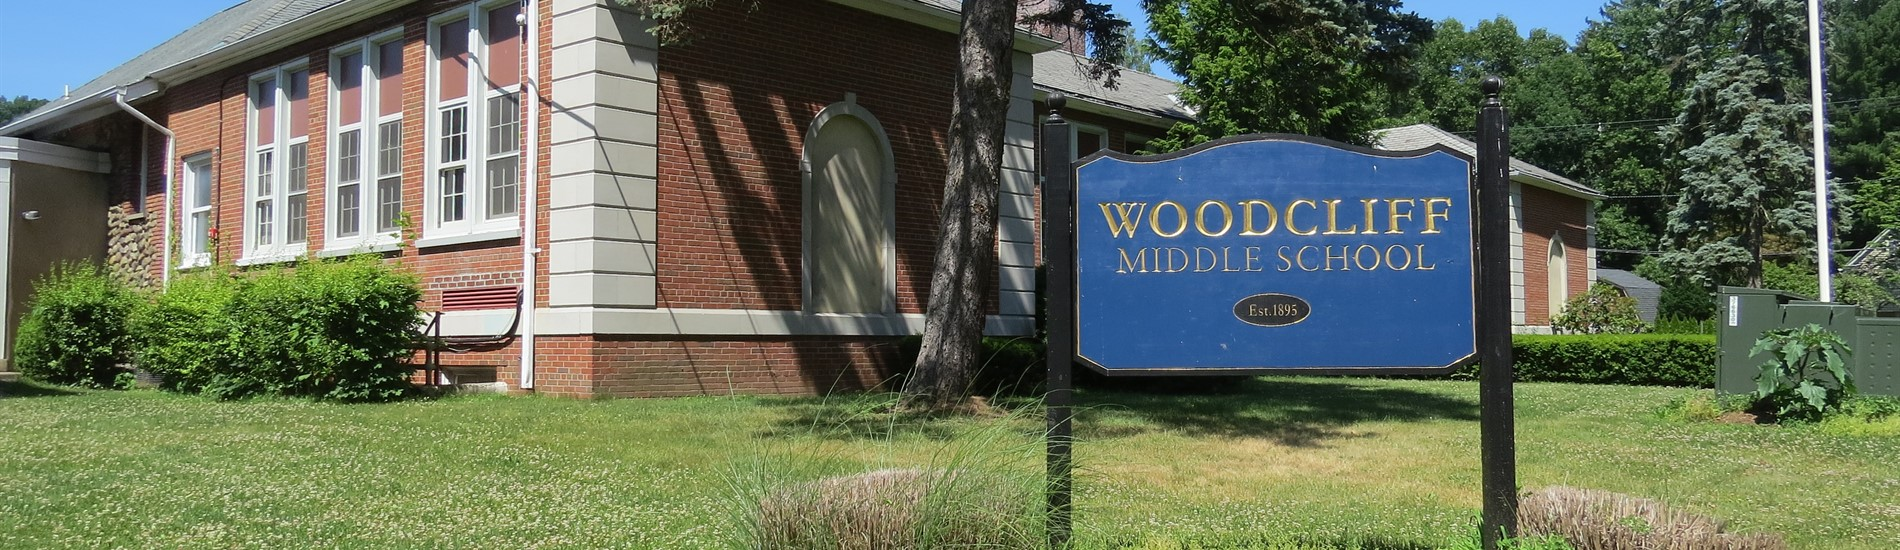 Woodcliff Middle School sign